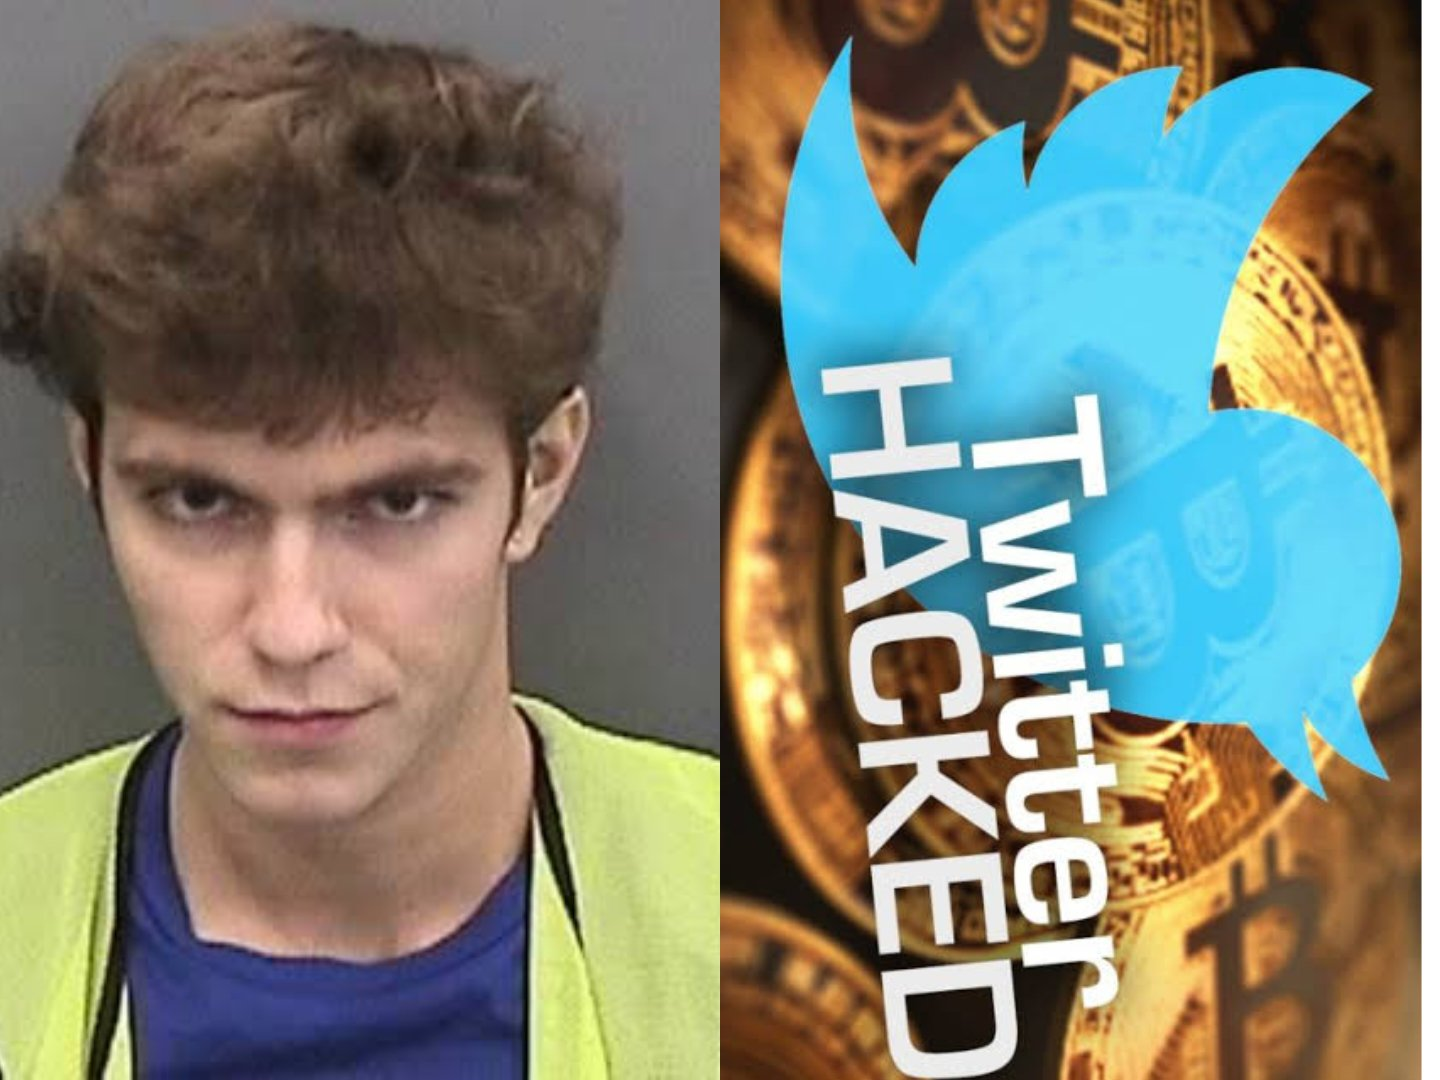 17-Year-Old Arrested As Mastermind Of Twitter Hack